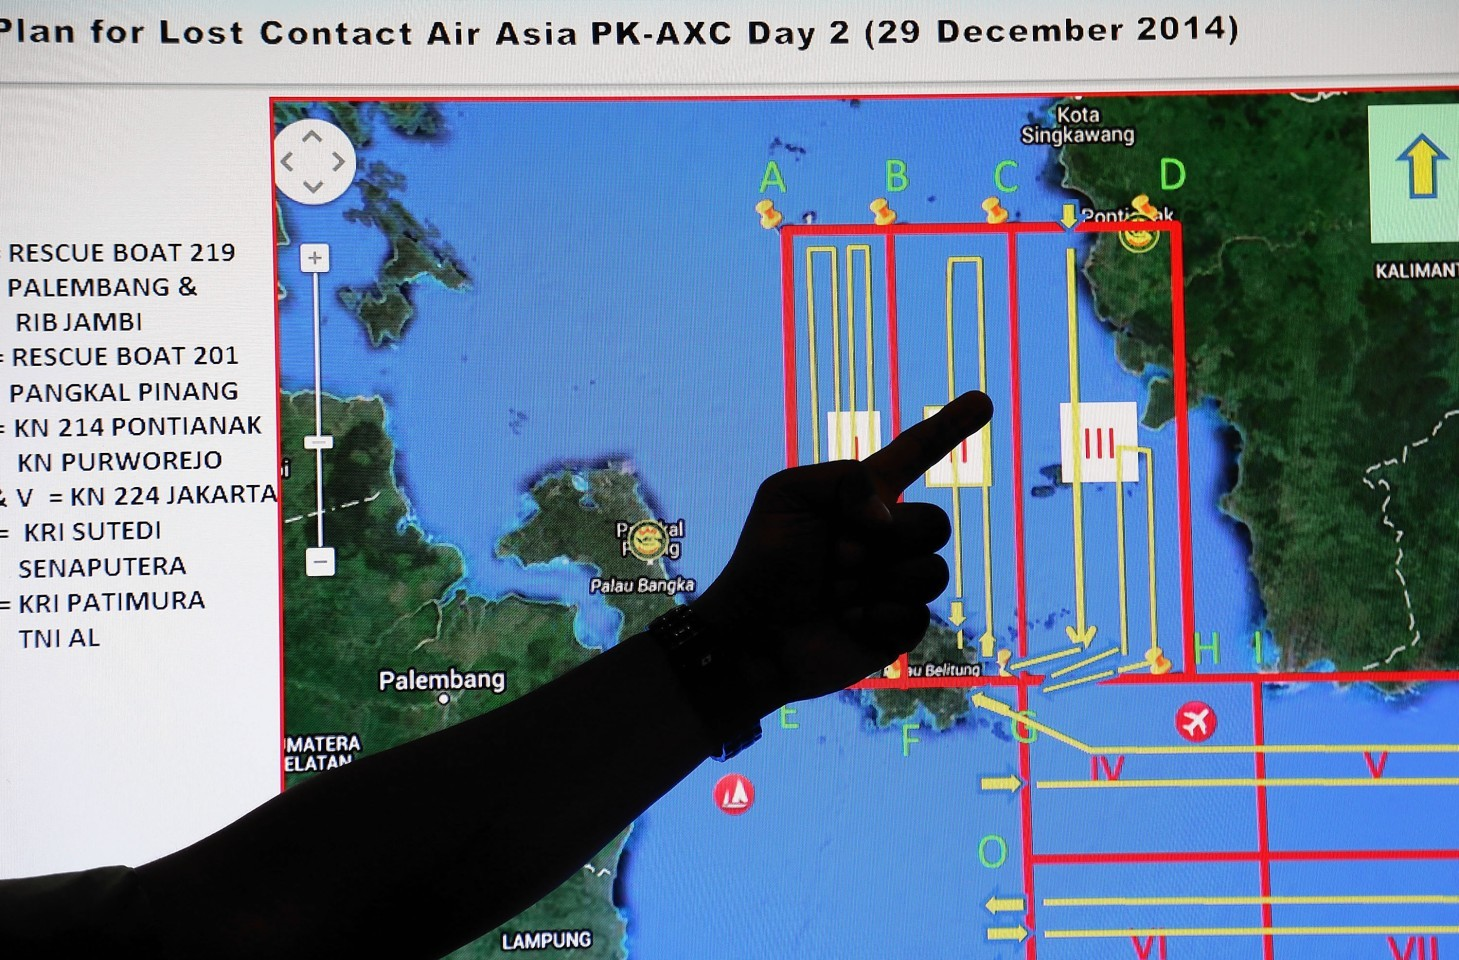 A member of the Indonesian National Search and Rescue Agency (BASARNAS) points to a map of a search area during a briefing prior to a search and rescue operation of the missing AirAsia flight QZ8501